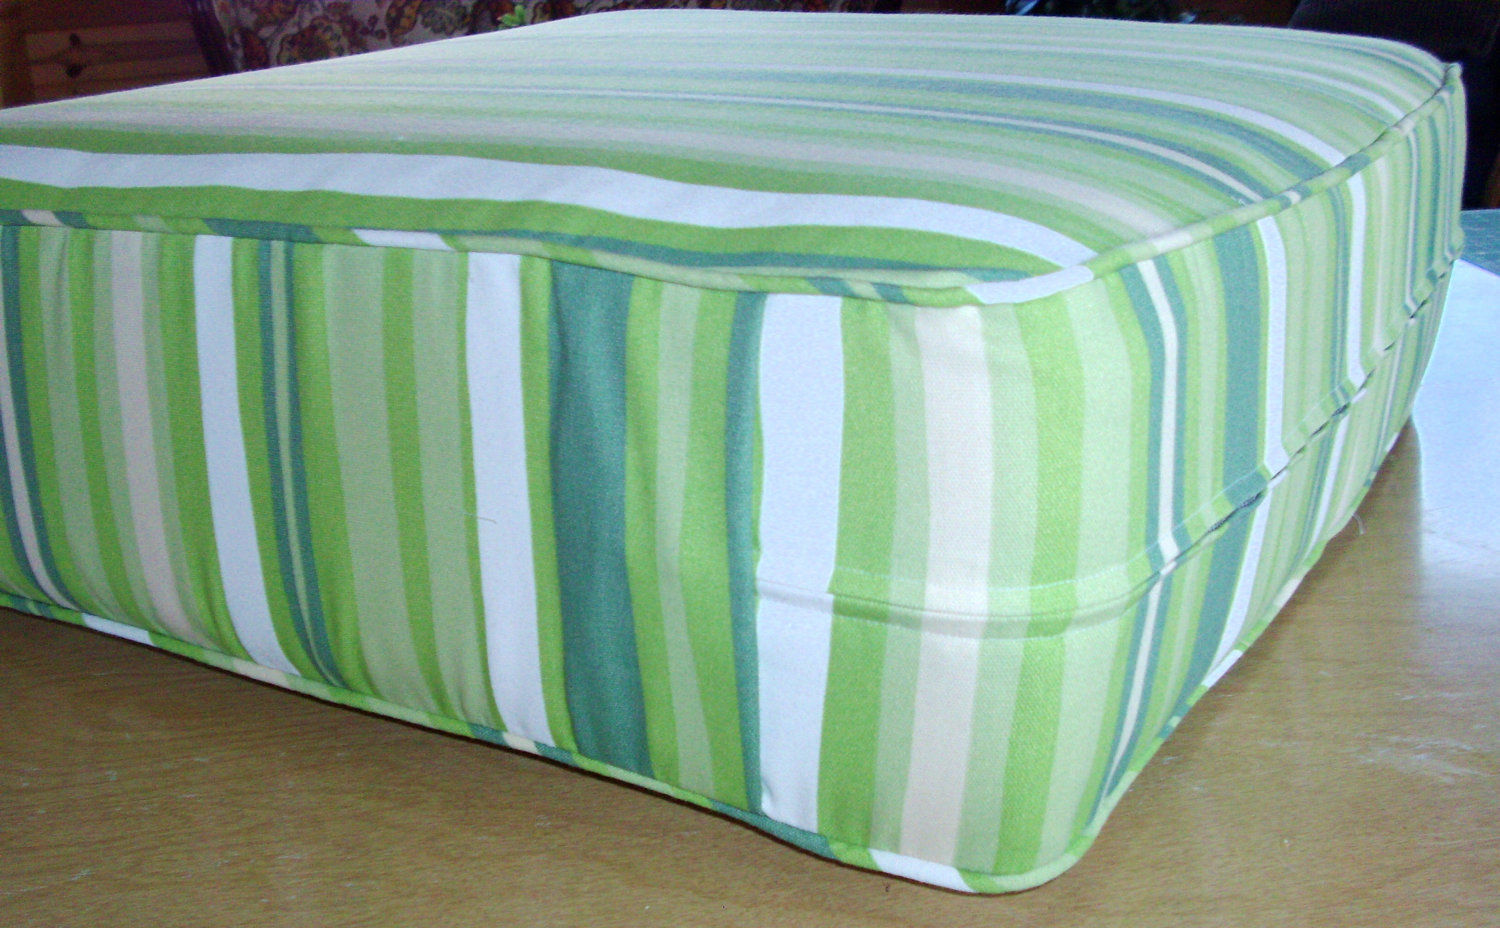 stunning plastic sofa covers with zipper gallery-Luxury Plastic sofa Covers with Zipper Online